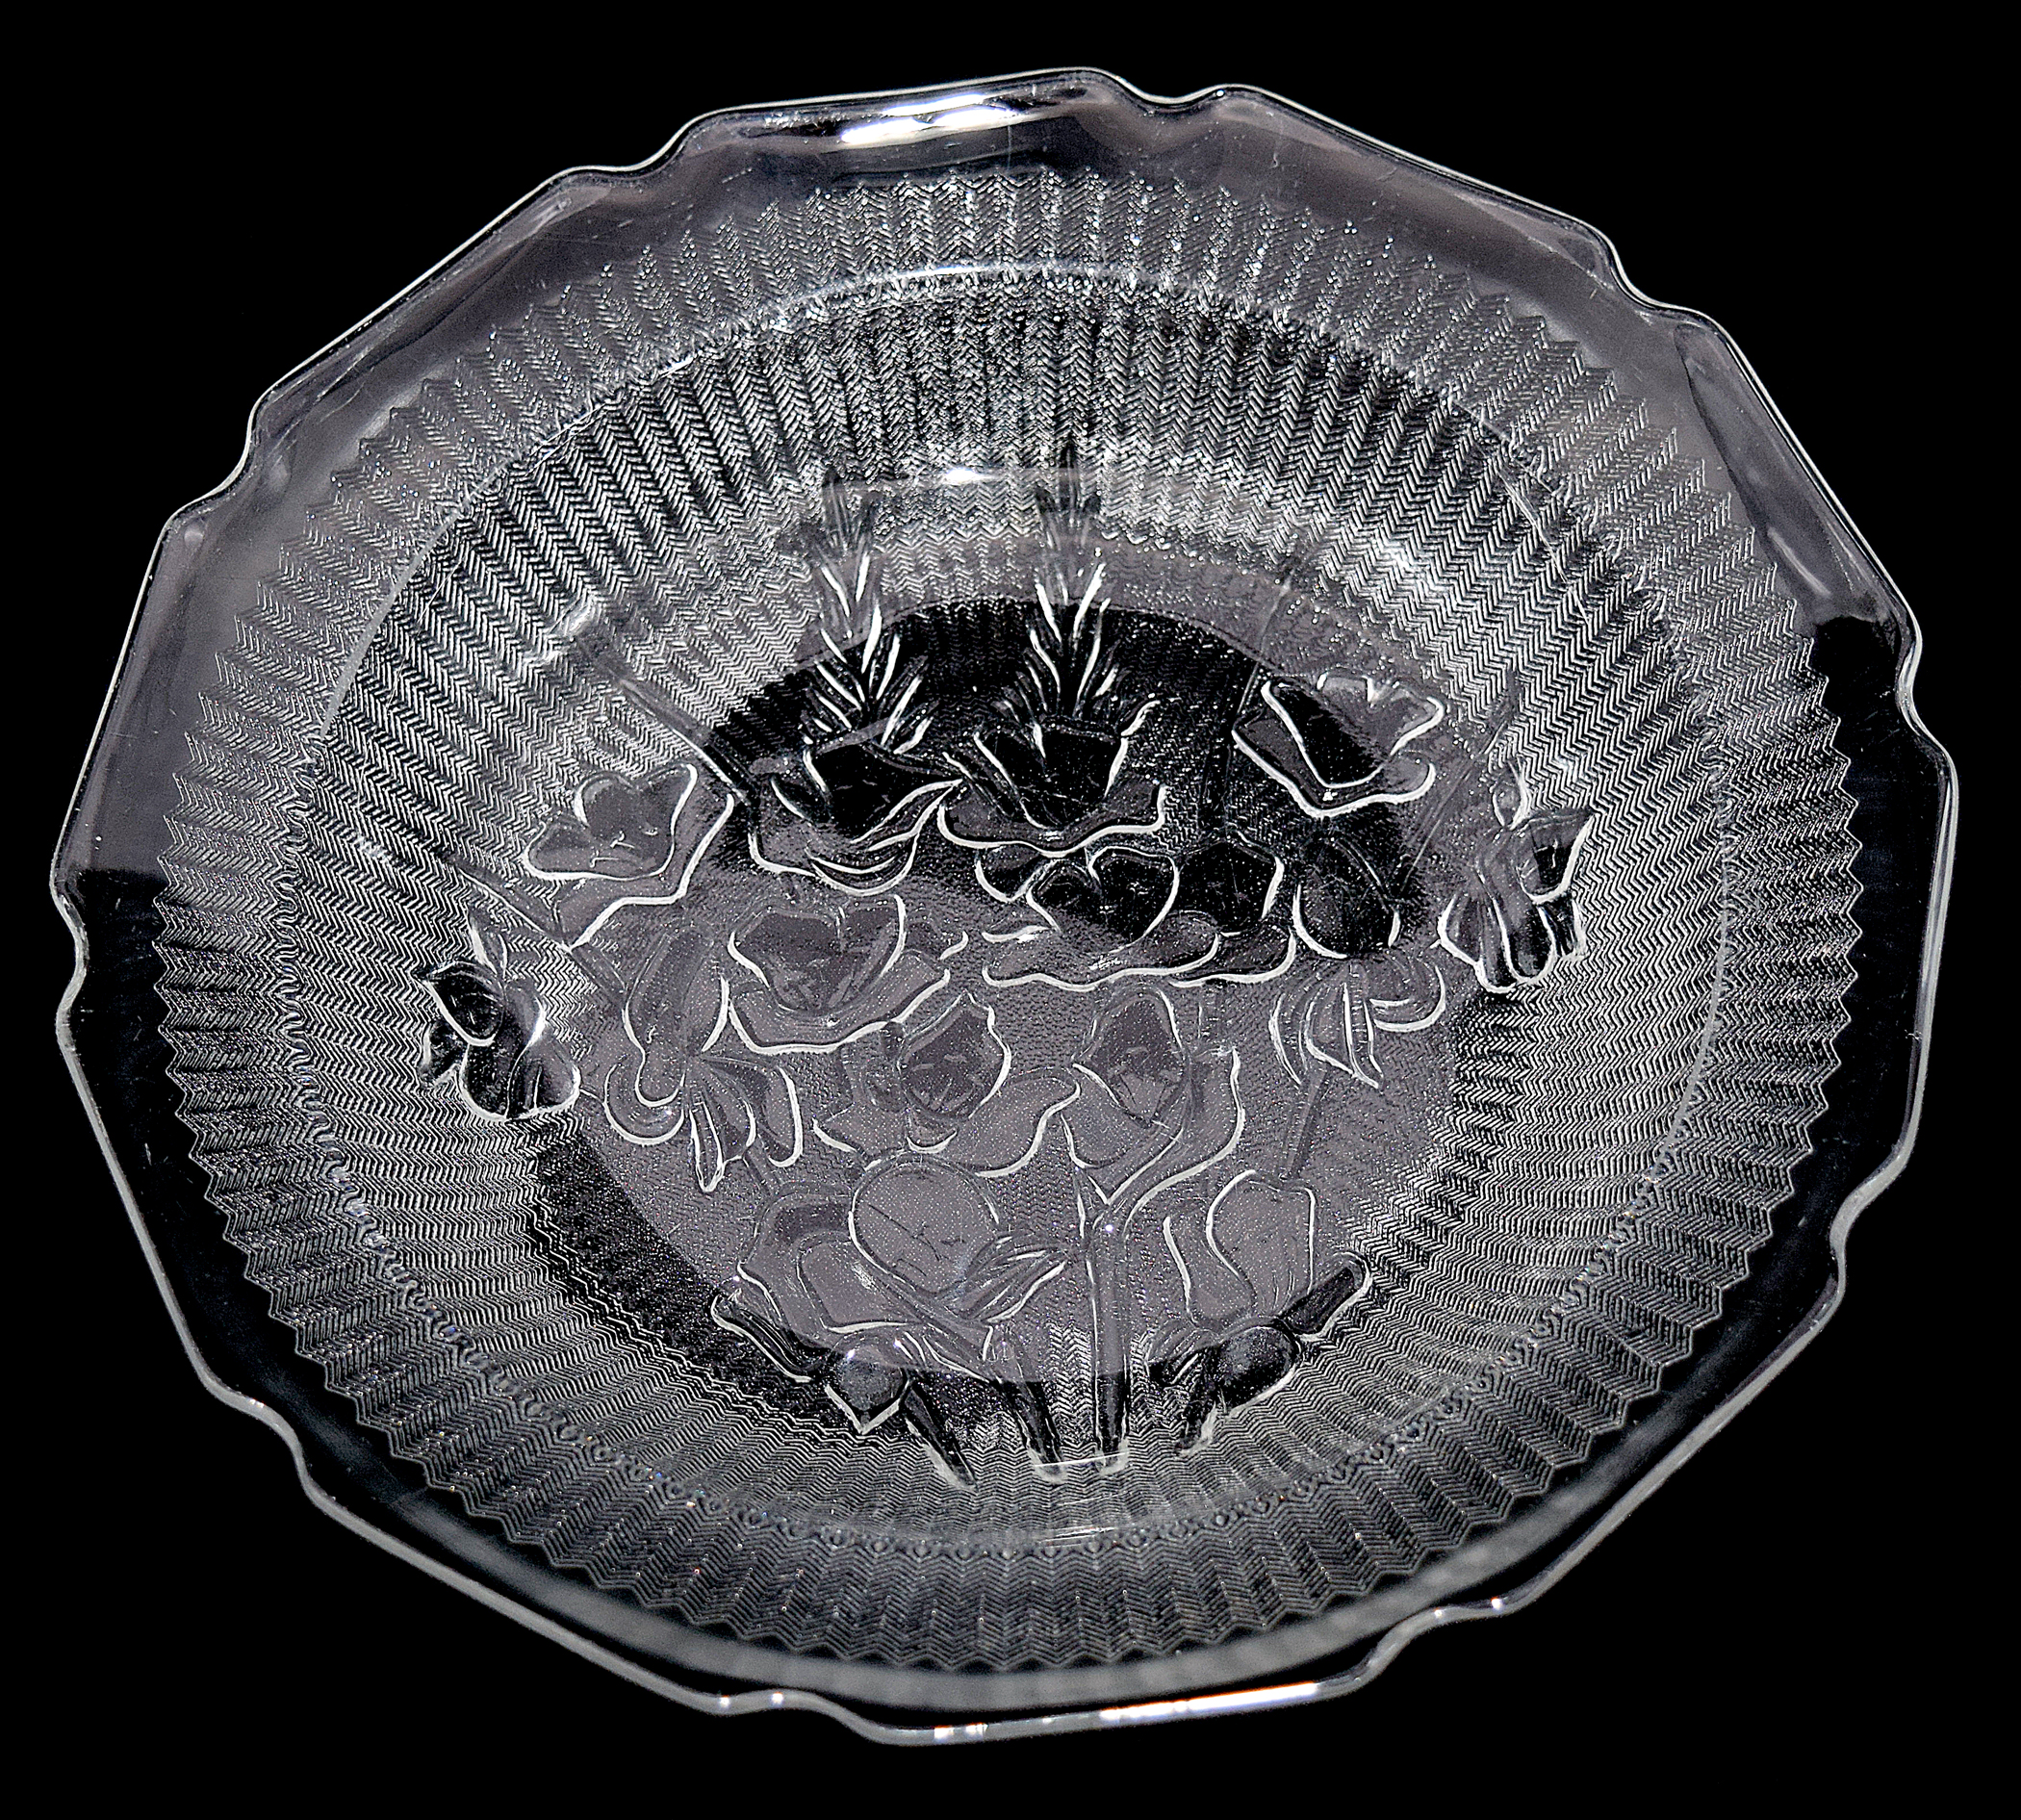 Jeannette Crystal Iris Flat Soup Bowl Front